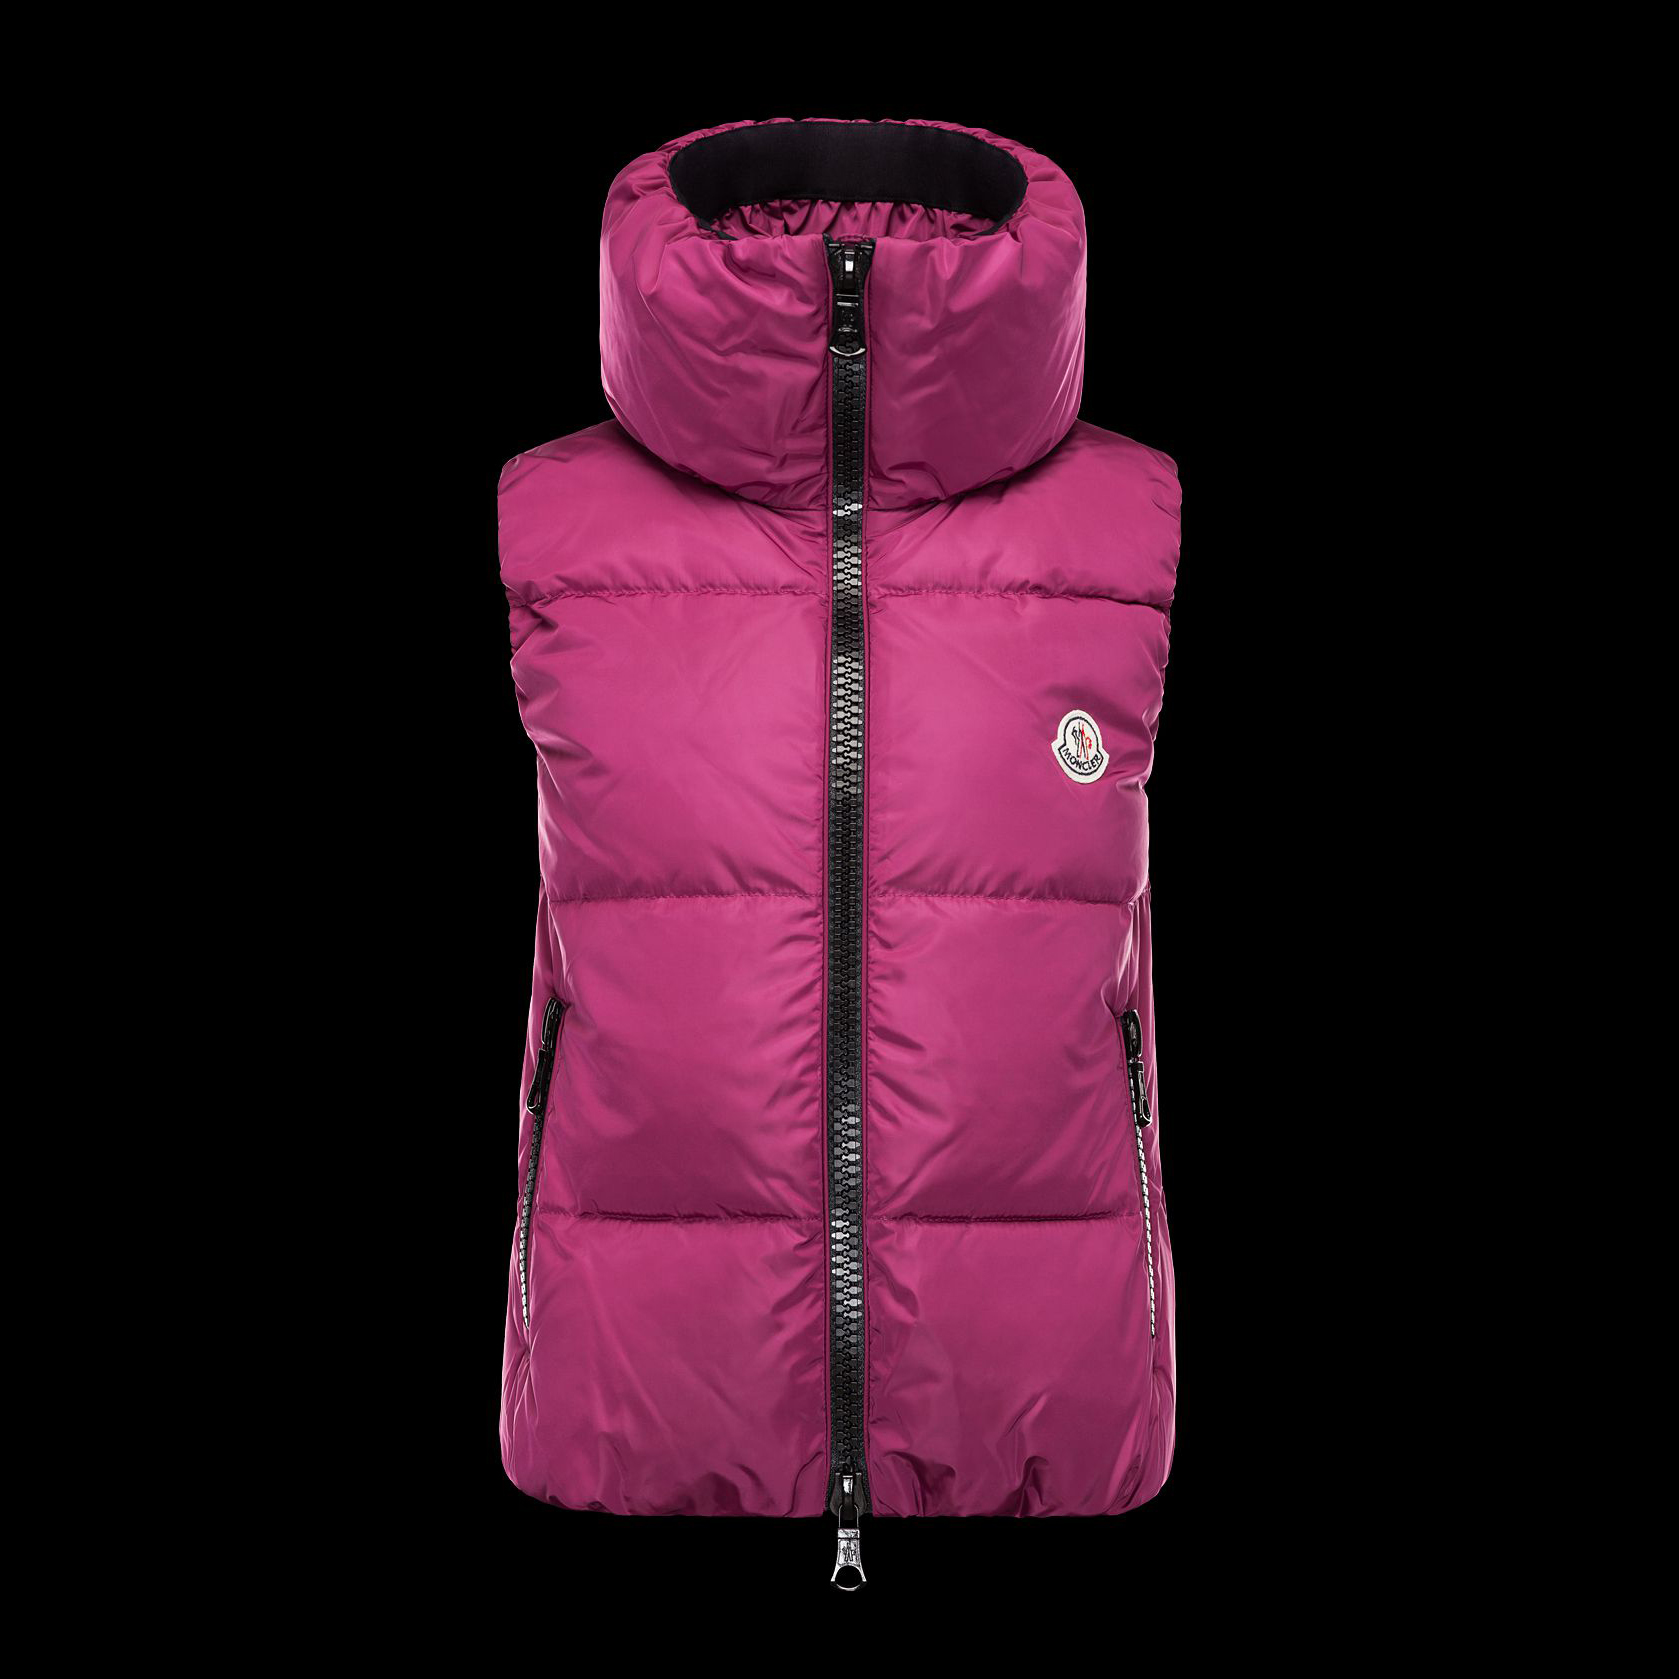 Cheap Moncler Down Vest Women With High Collar Pink MC1331 Sale